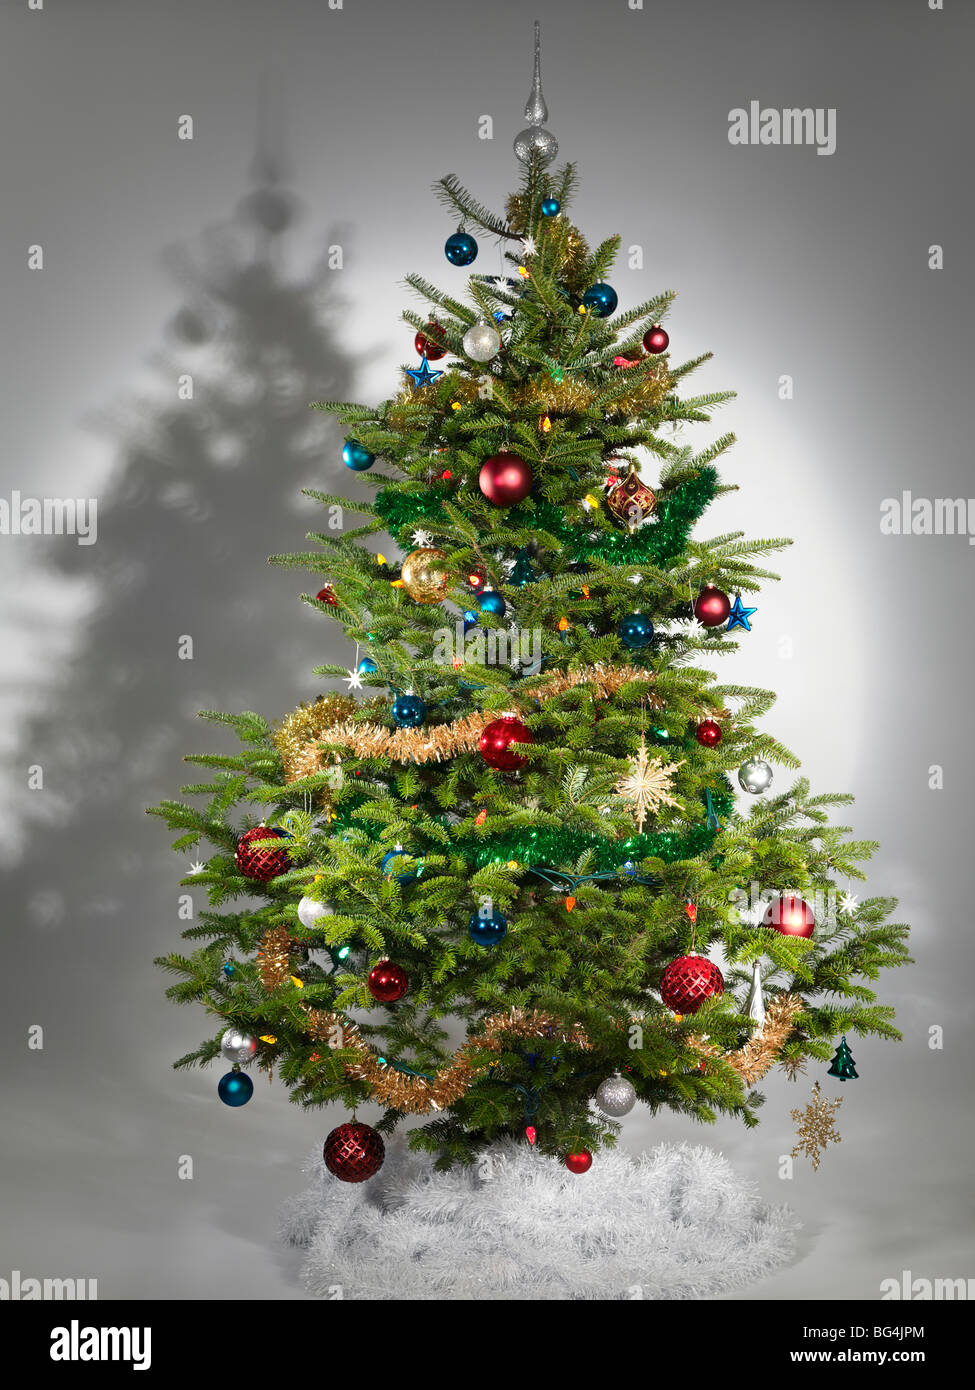 Real Christmas Tree Stock Photos & Real Christmas Tree Stock Images ...